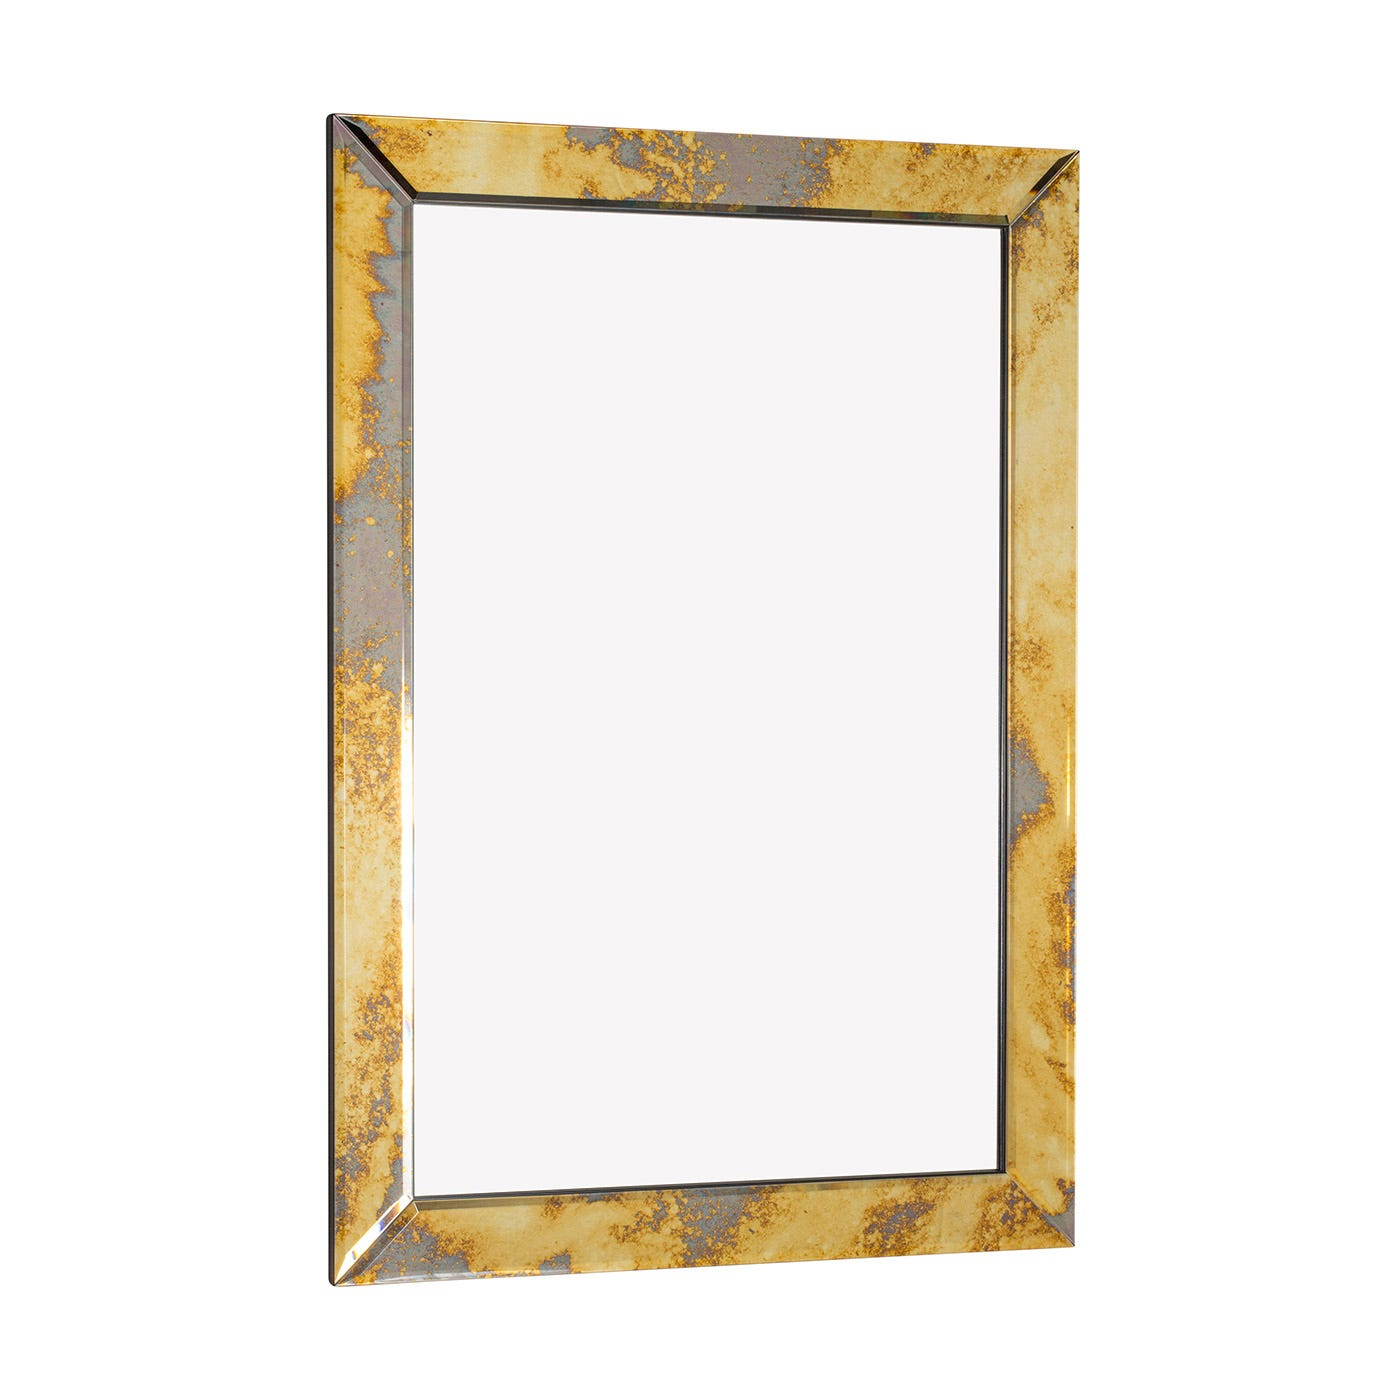 Well-liked Heal's Mitre Modern Vintage Gold Mirror | HEAL'S QL06